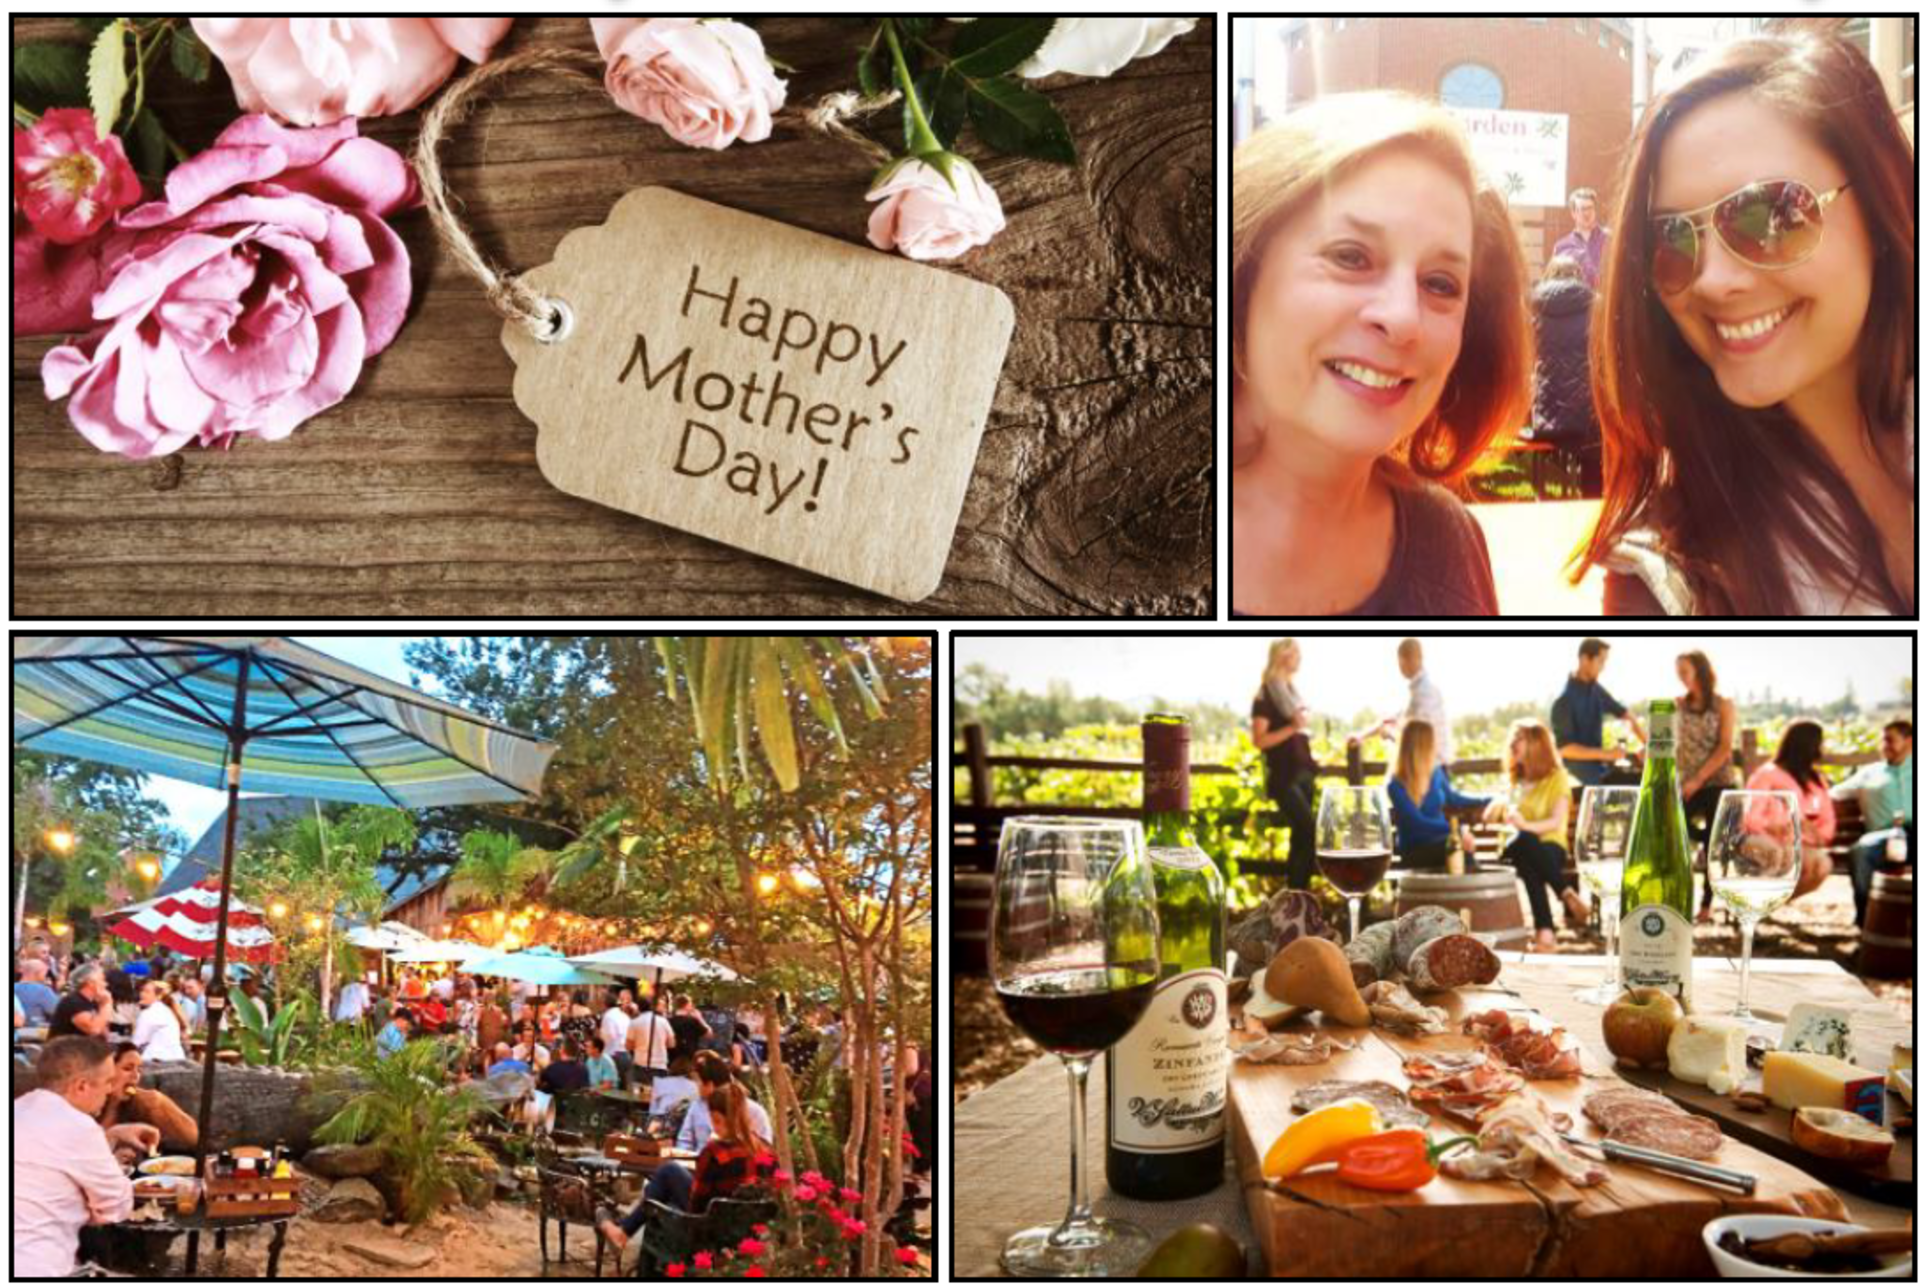 Schulien and Associates' Weekend Guide Mother's Day Edition: (May 11-13)